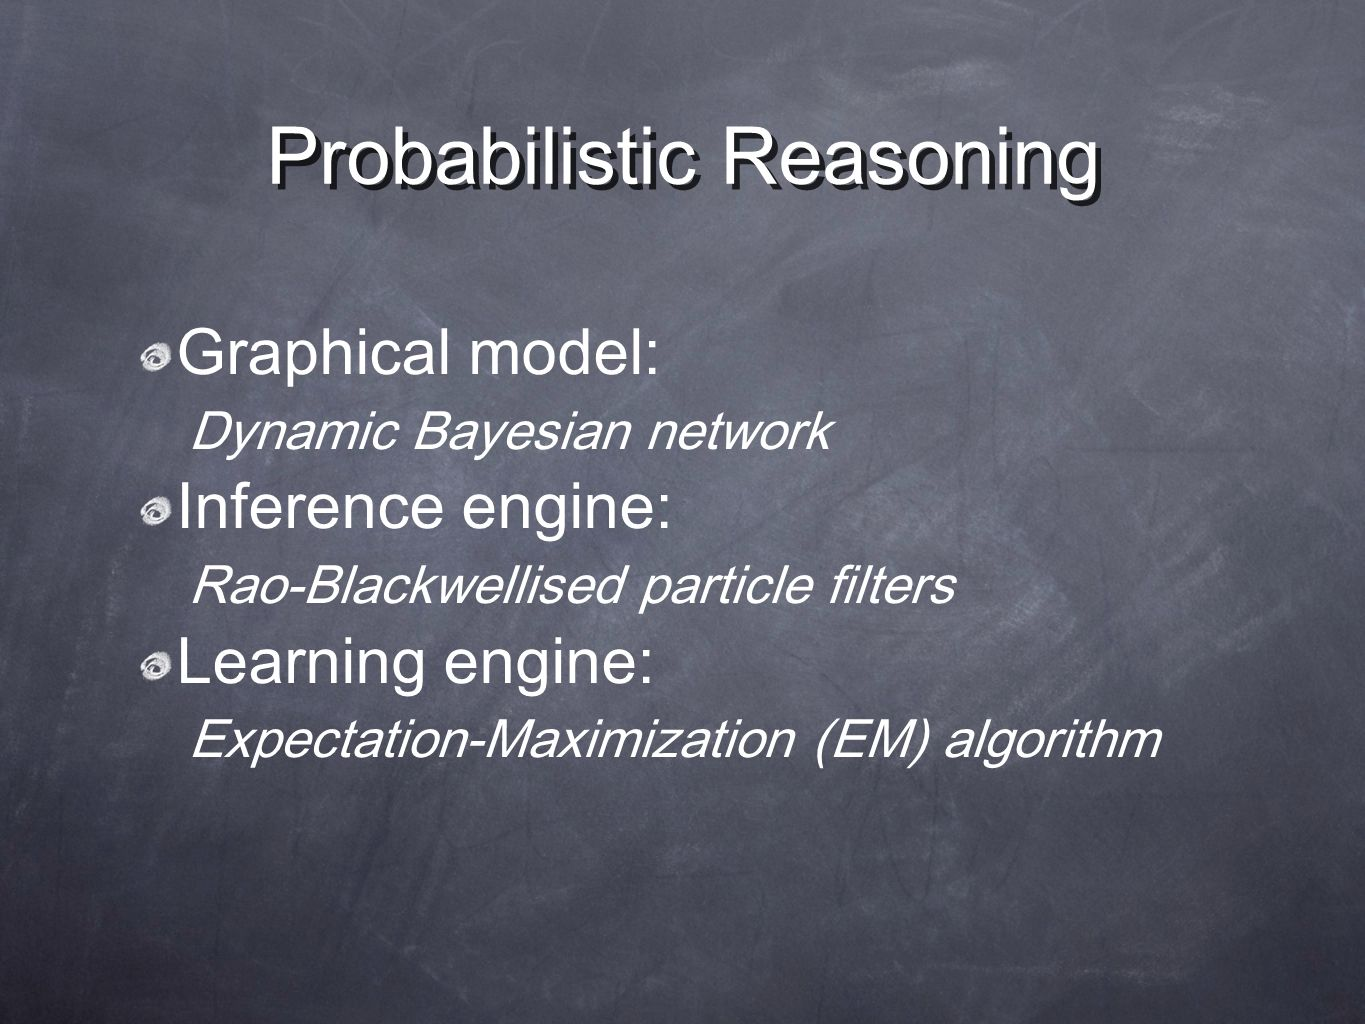 Probabilistic Reasoning Graphical model: Dynamic Bayesian network Inference engine: Rao-Blackwellised particle filters Learning engine: Expectation-Maximization (EM) algorithm